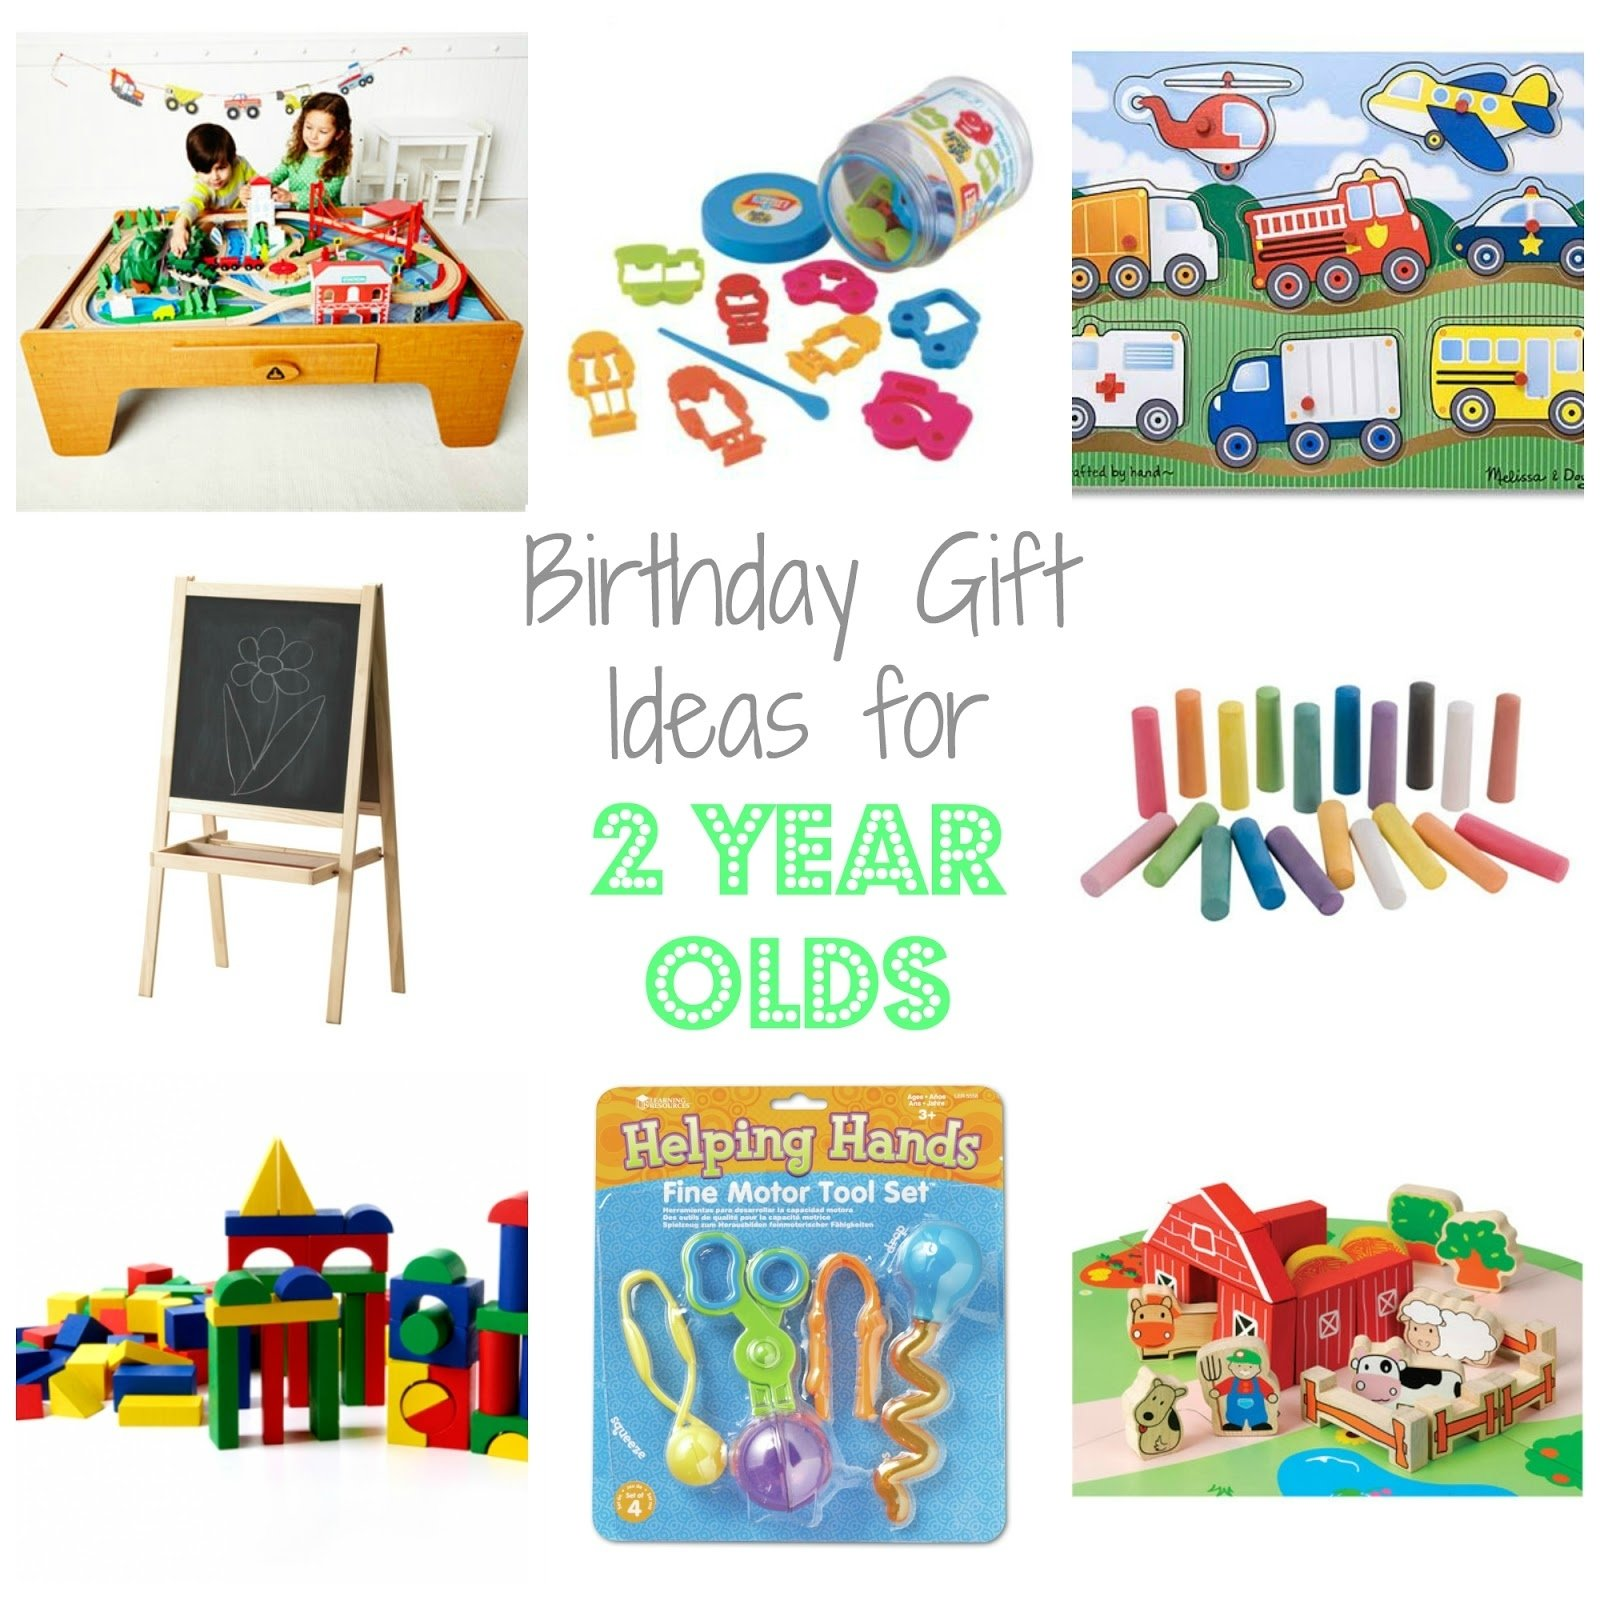 10 Unique Gift Ideas For 2 Year Old birthday gift ideas for two year olds oh little one sweet 1 2020